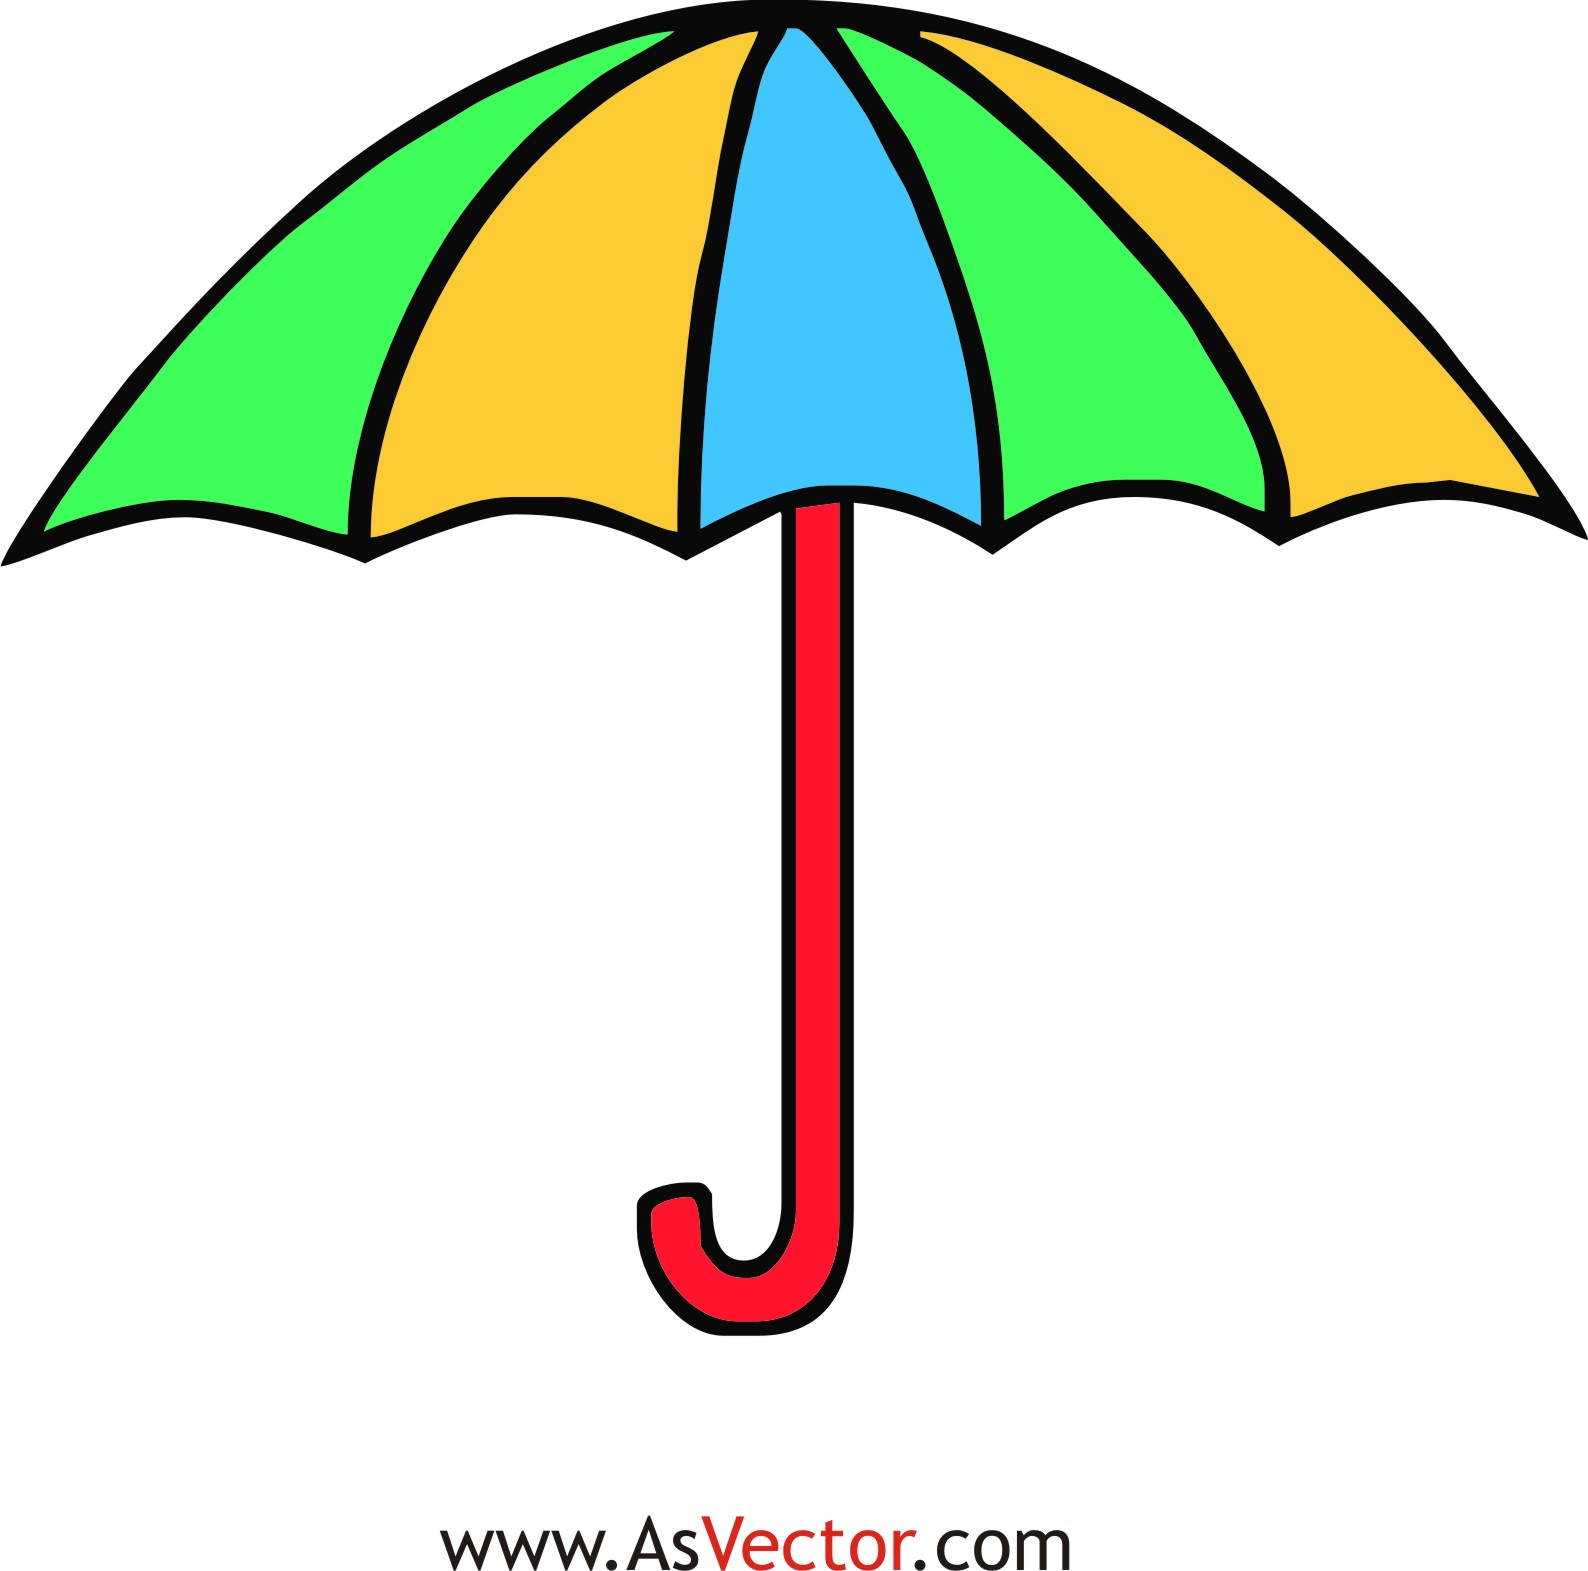 1588x1571 Clip Art Umbrella Many Interesting Cliparts